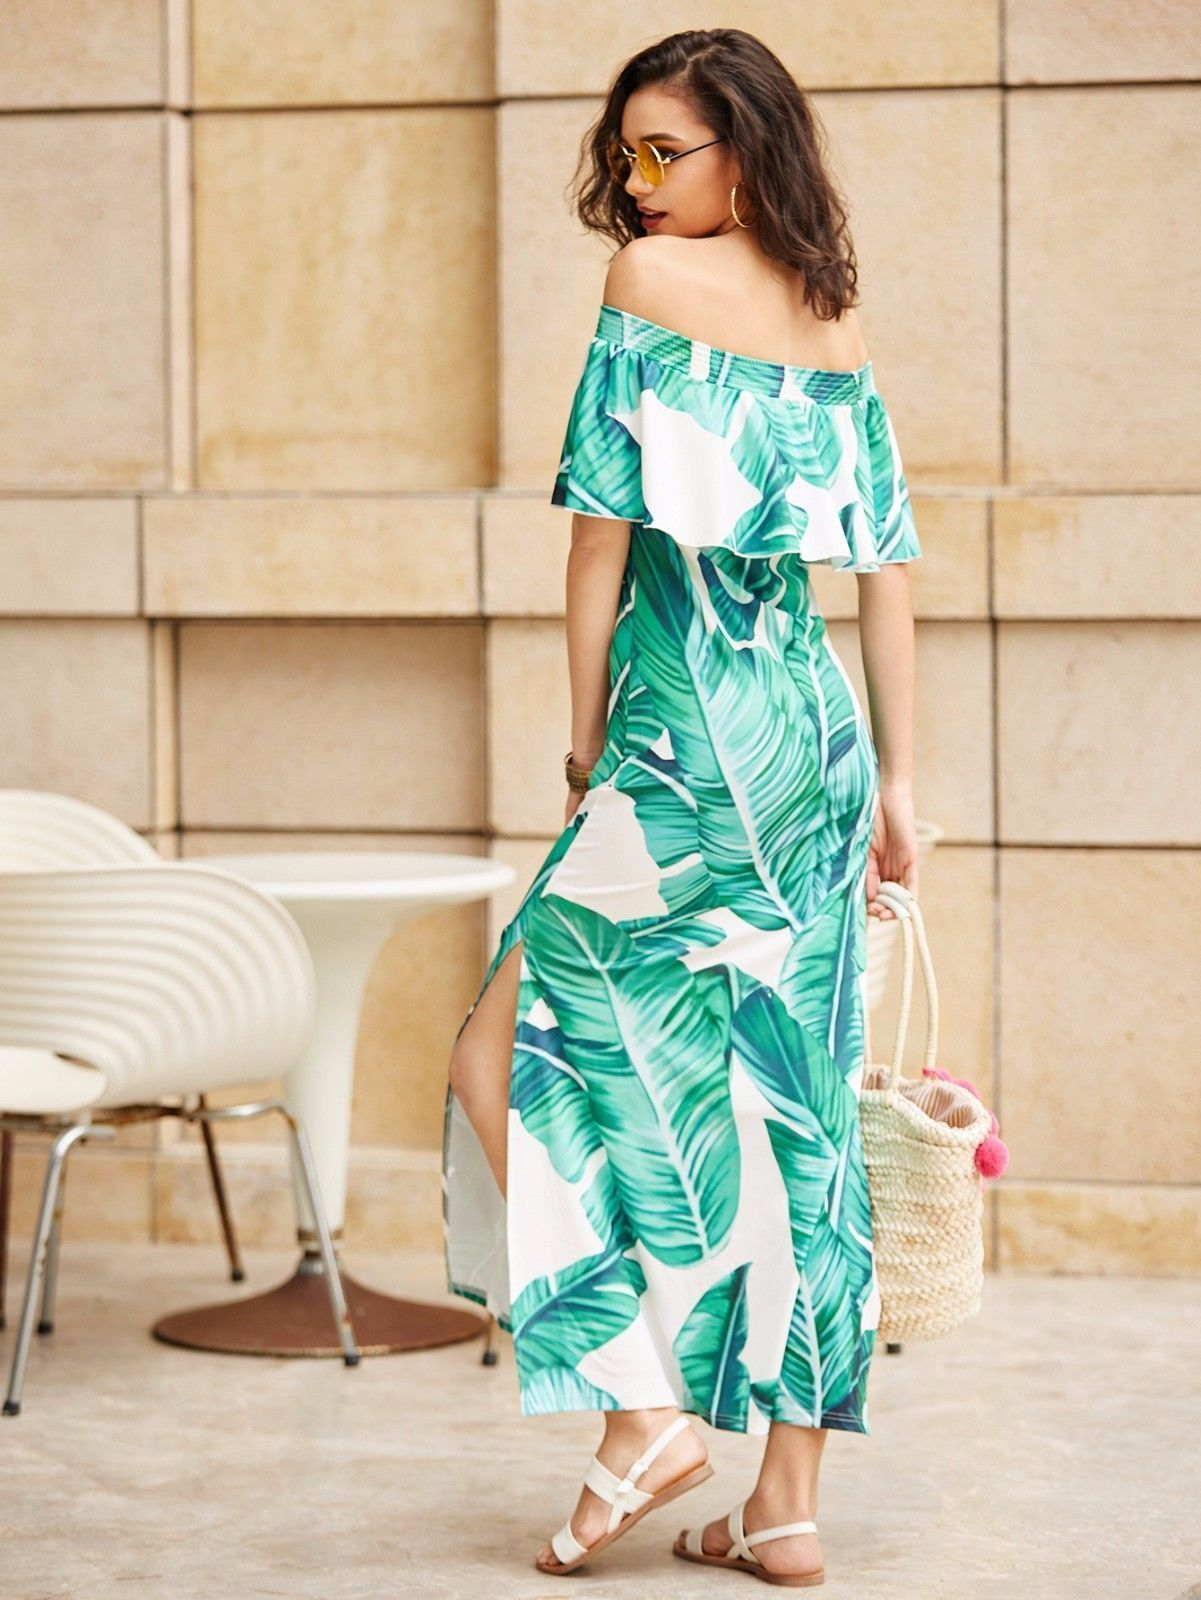 0d4790bc0a91 Green Palm Leaf Print Side Slit Flounce Off Shoulder Bardot A Line Maxi  Dress